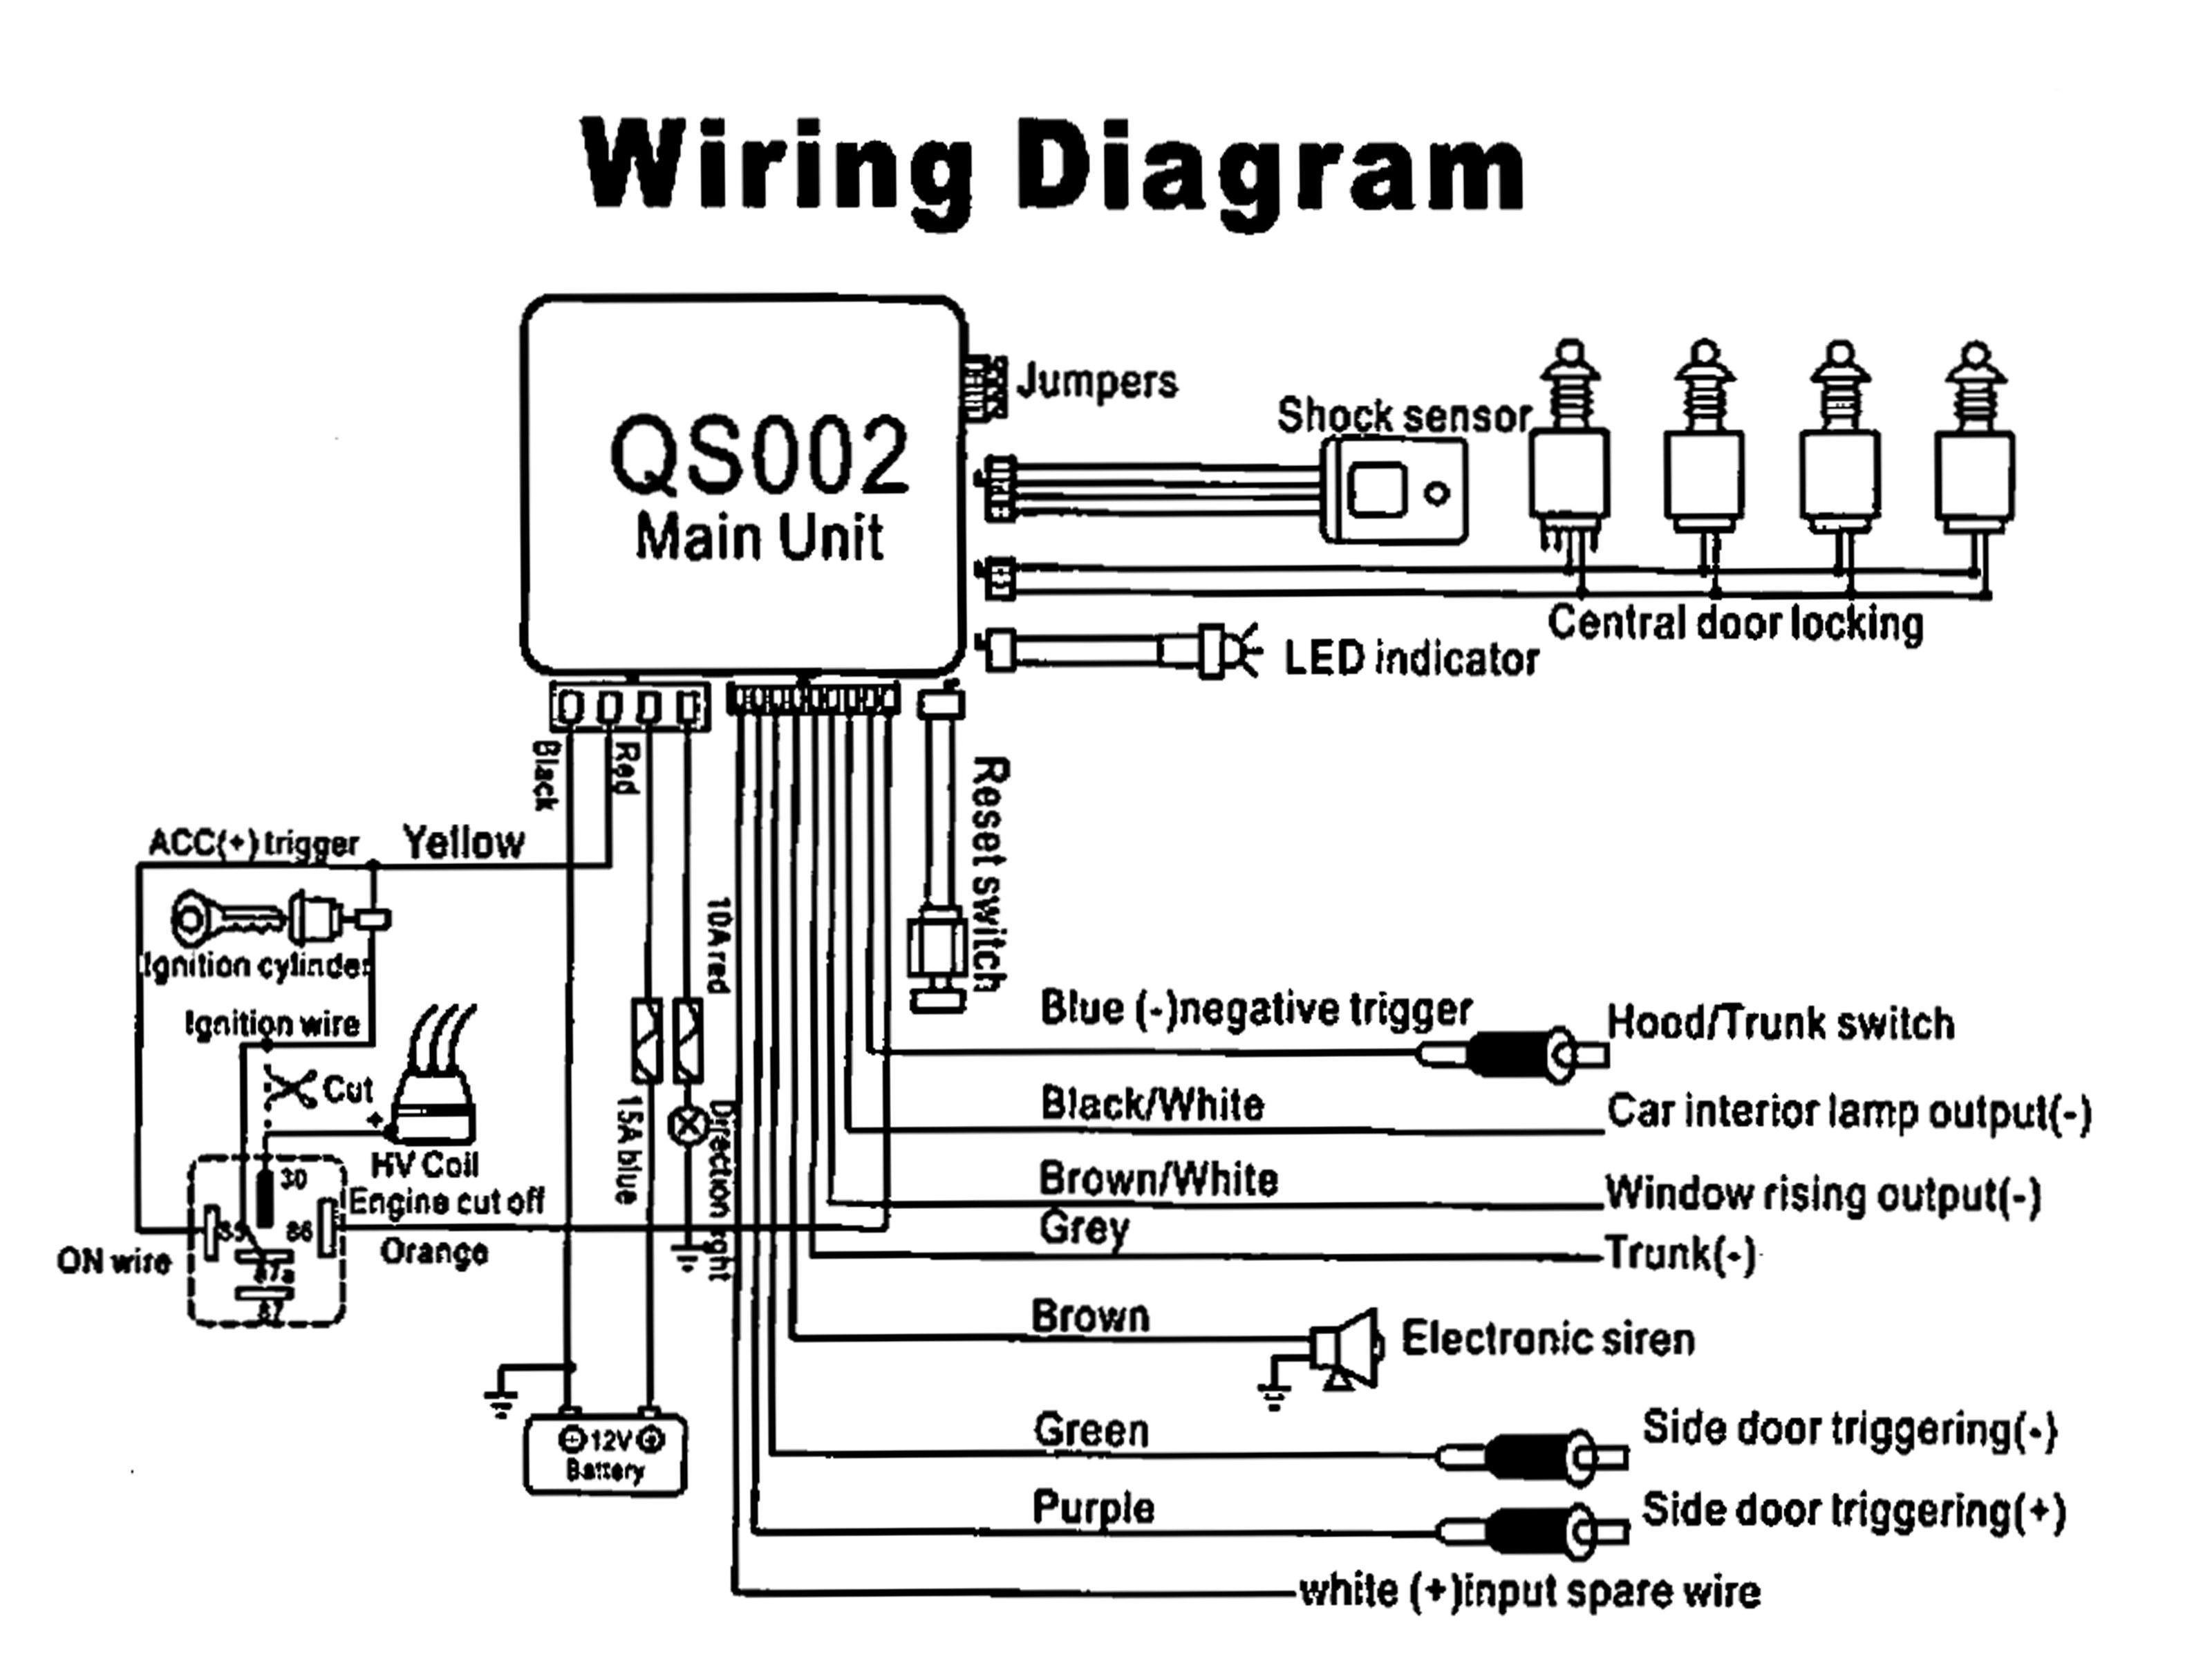 Car Alarm Wiring Diagram - Wiring Diagram Sch on car alarm manual, car alarm relay, car relay diagram, basic car alarm diagram, car engine diagram, car schematic diagram, car audio diagram, basic alarm system circuit diagram, car thermostat diagram, car alarm lights, elevator fire alarm system diagram, car system diagram, car alarm repair, car alarm system, car electrical wiring, viper 5904 installation diagram, vehicle alarm system diagram, car alarm installation, car stereo diagram, car frame diagram,